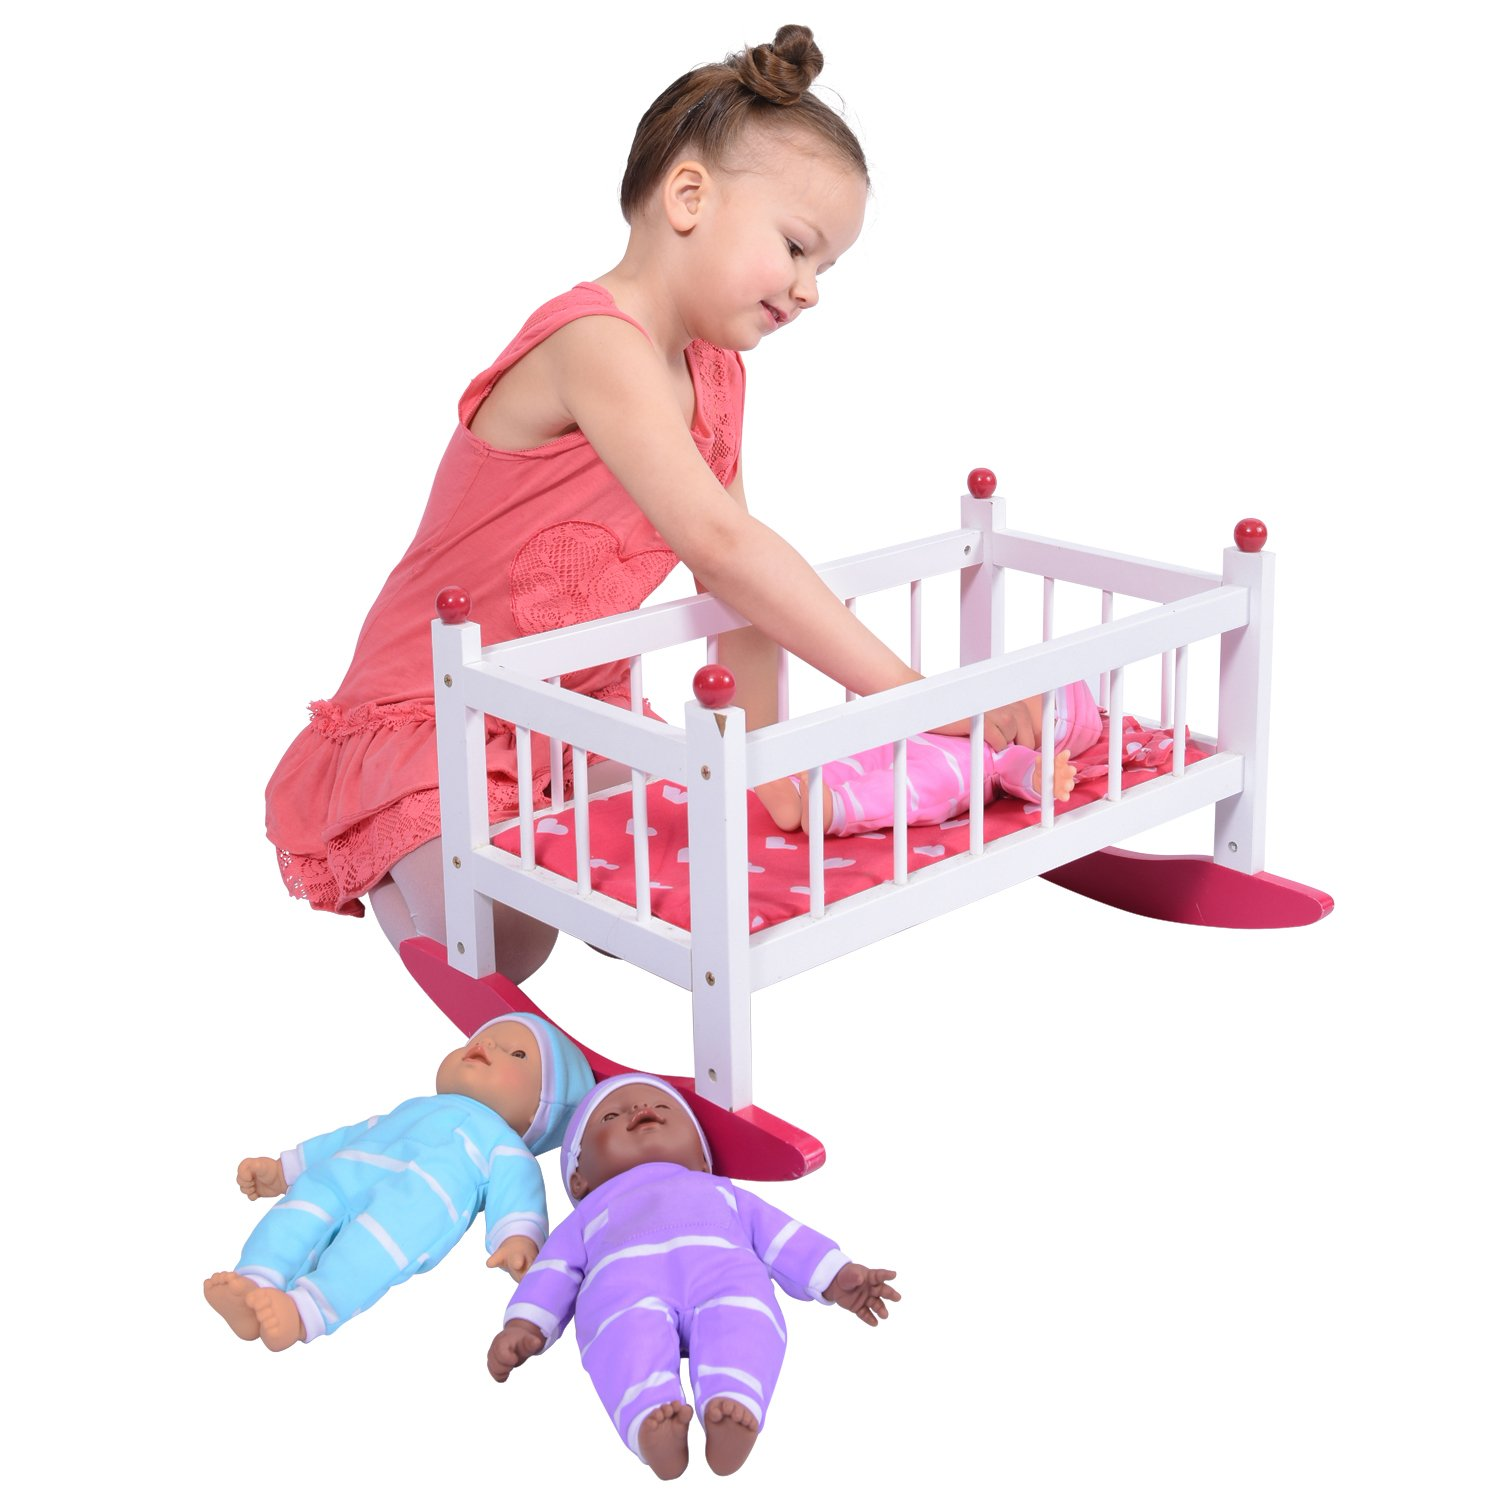 Wooden Baby Doll Rocking Cradle - Fits Baby Dolls and 18 Inch Dolls - Includes Mattress & Bedding The New York Doll Collection HT-WDF007